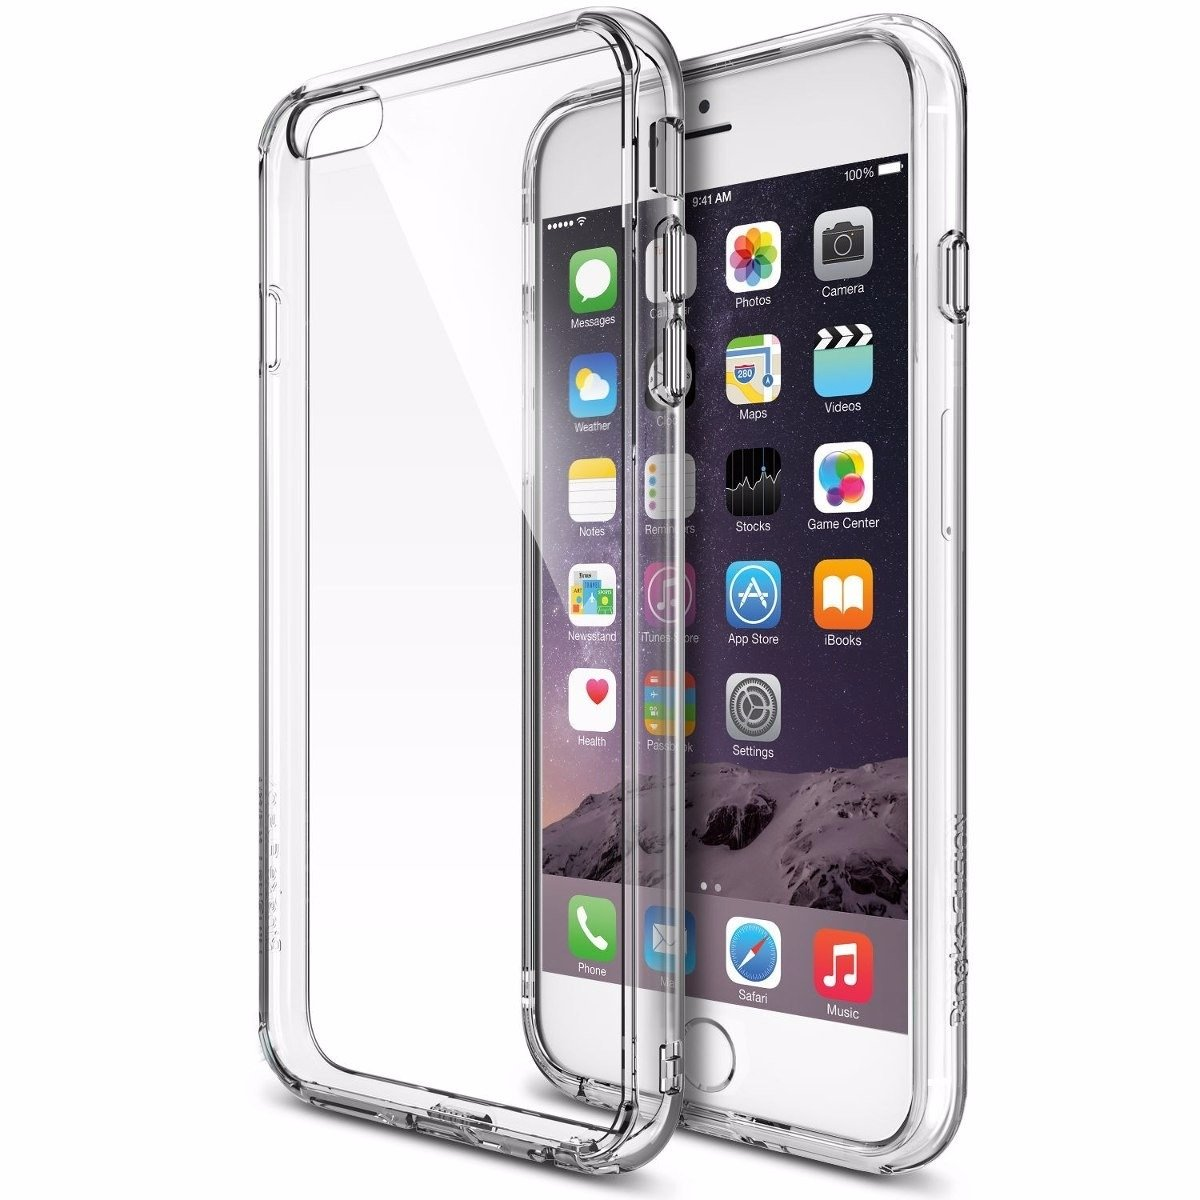 Funda Ringke Fusion para iPhone 7 plus / 8 plus - clear